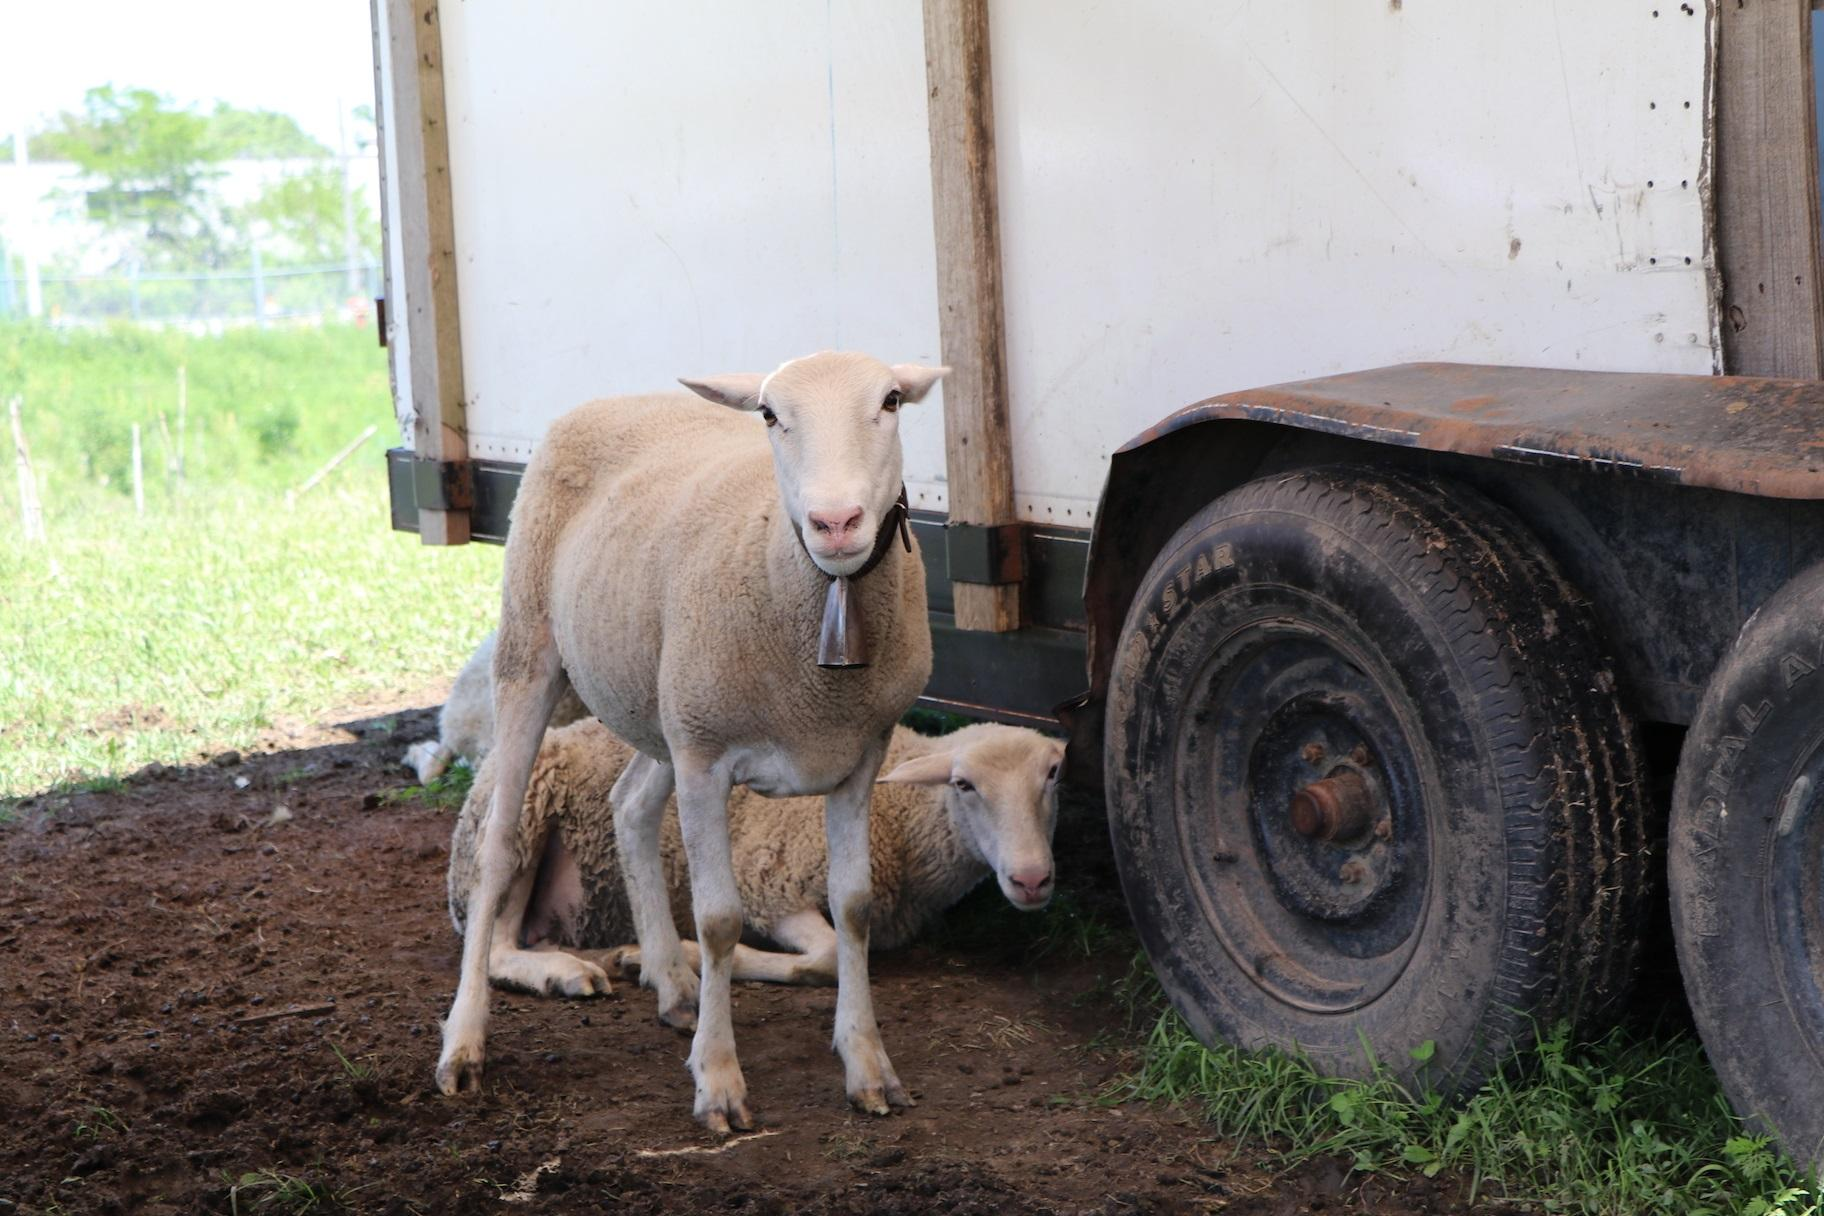 Two lambs get some shade underneath the trailer pen. (Evan Garcia / WTTW)